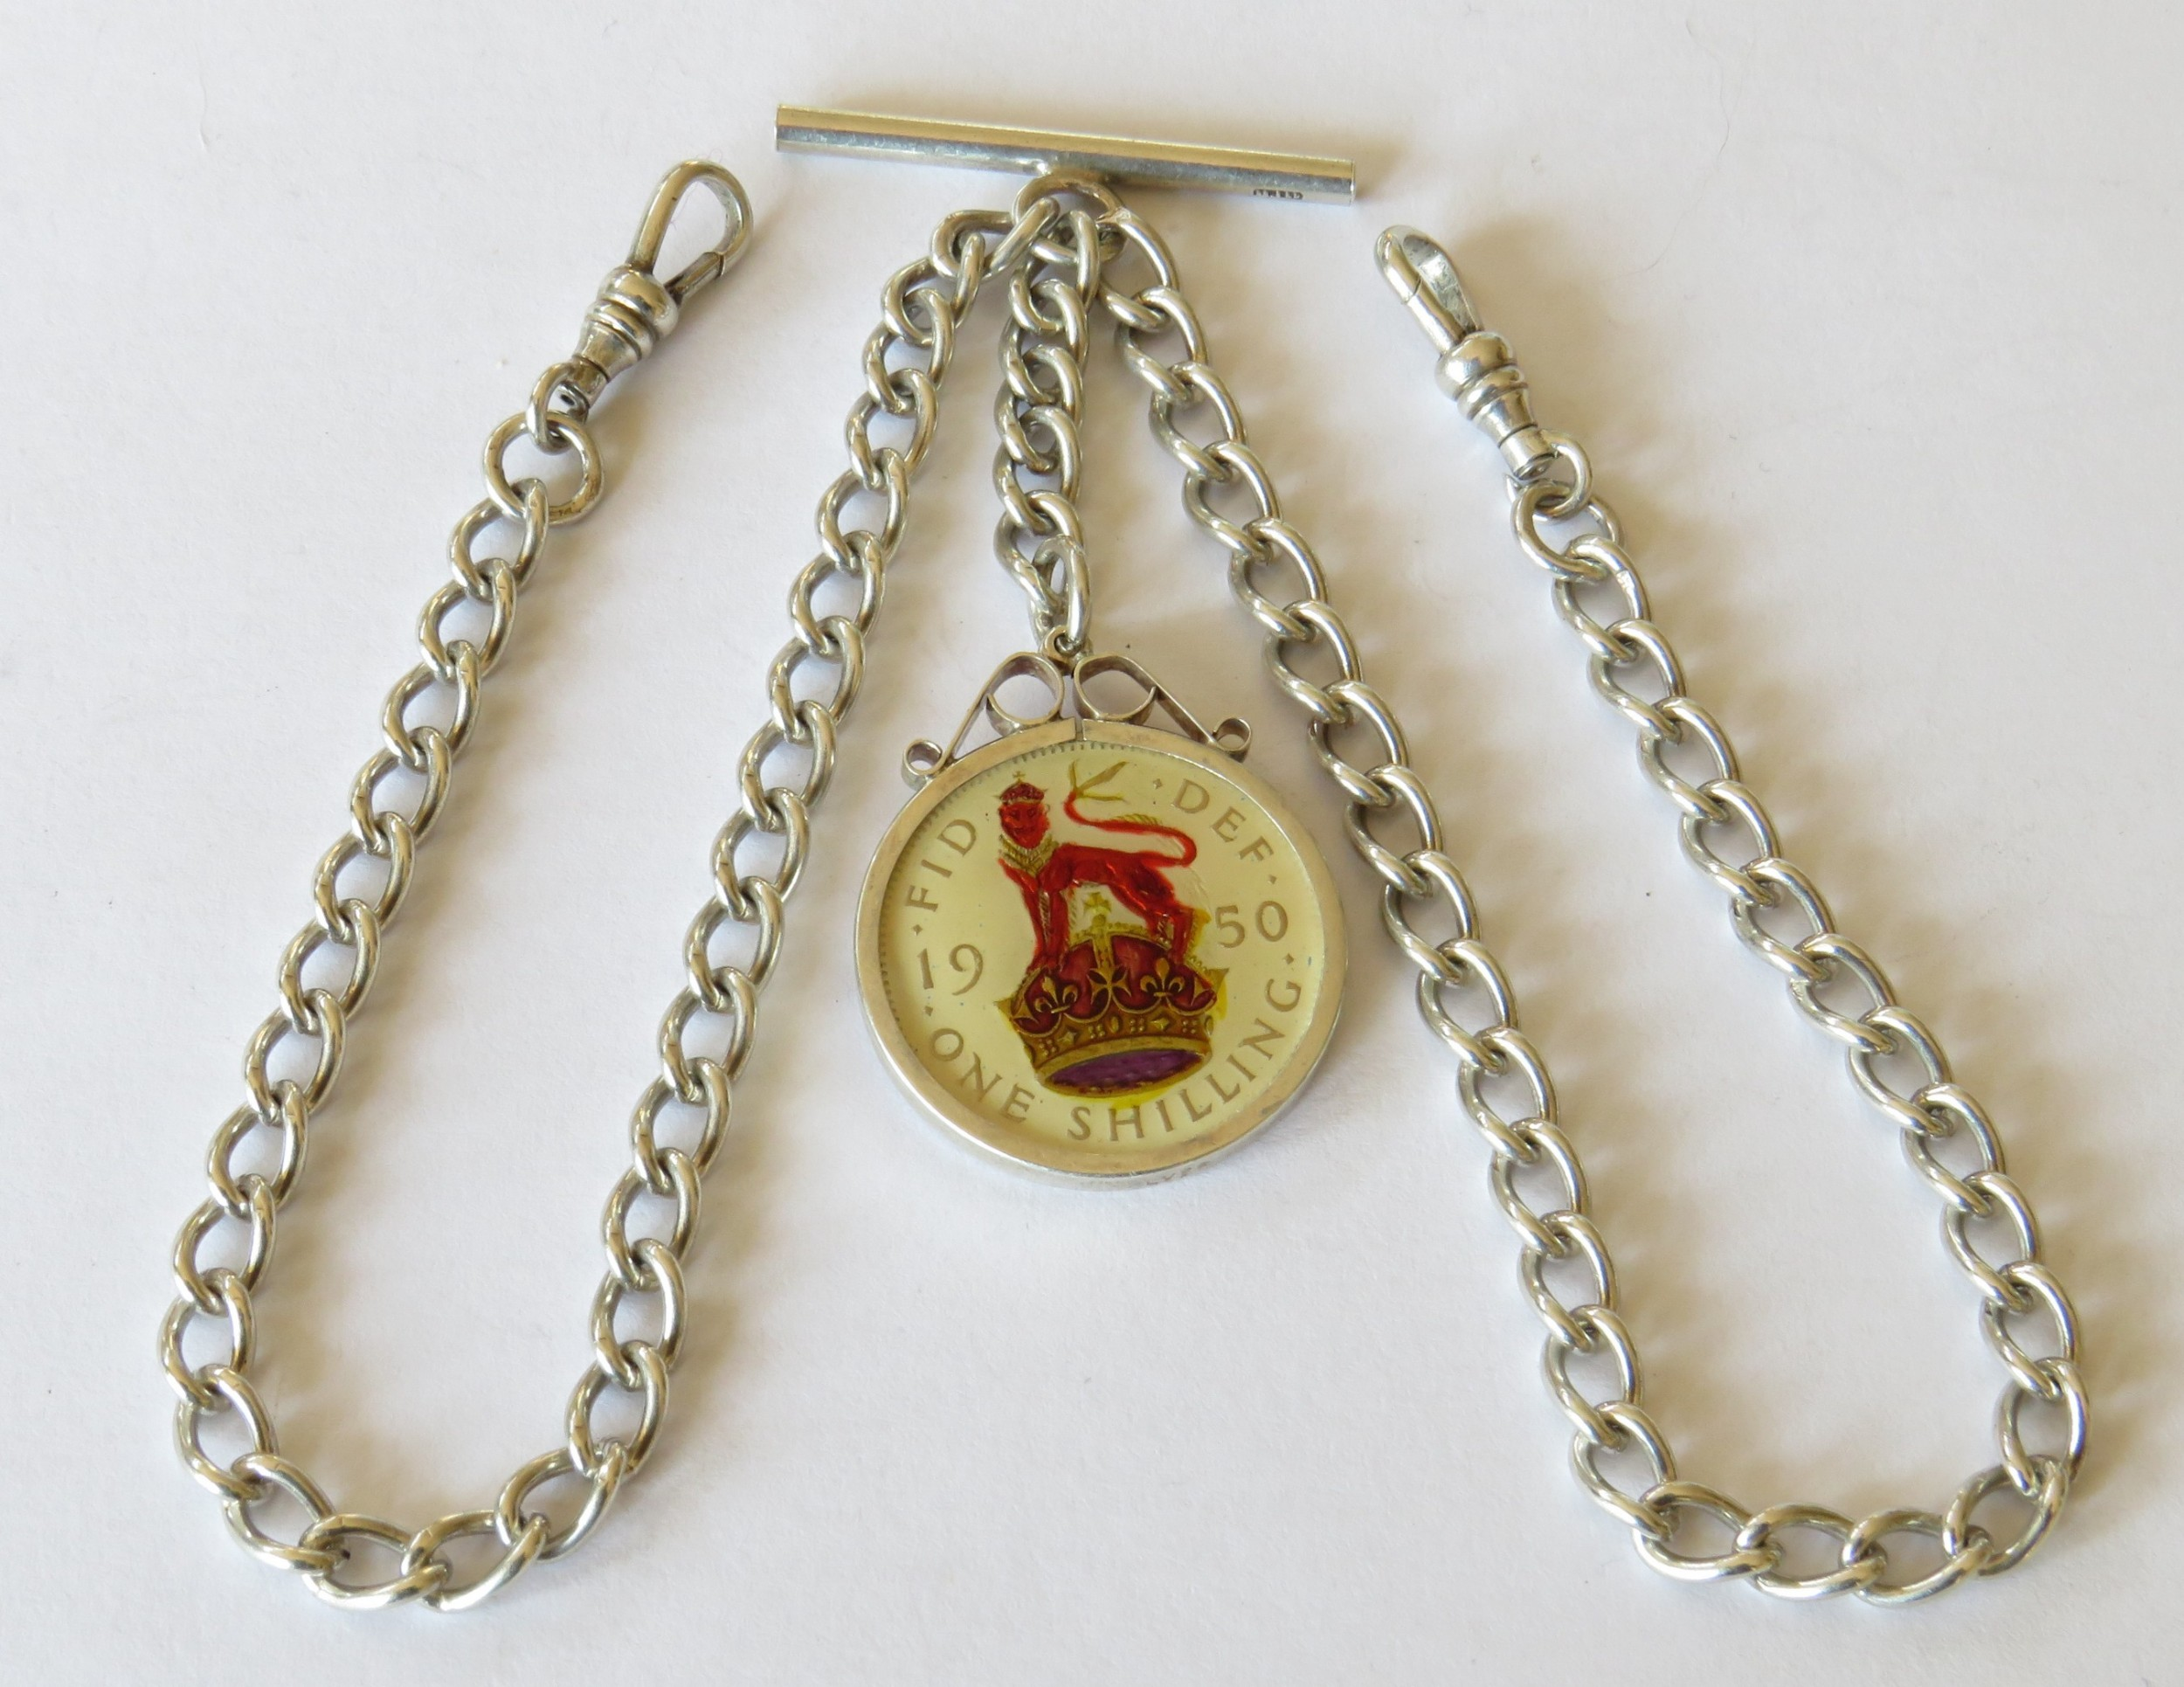 1920s silver double pocket watch chain